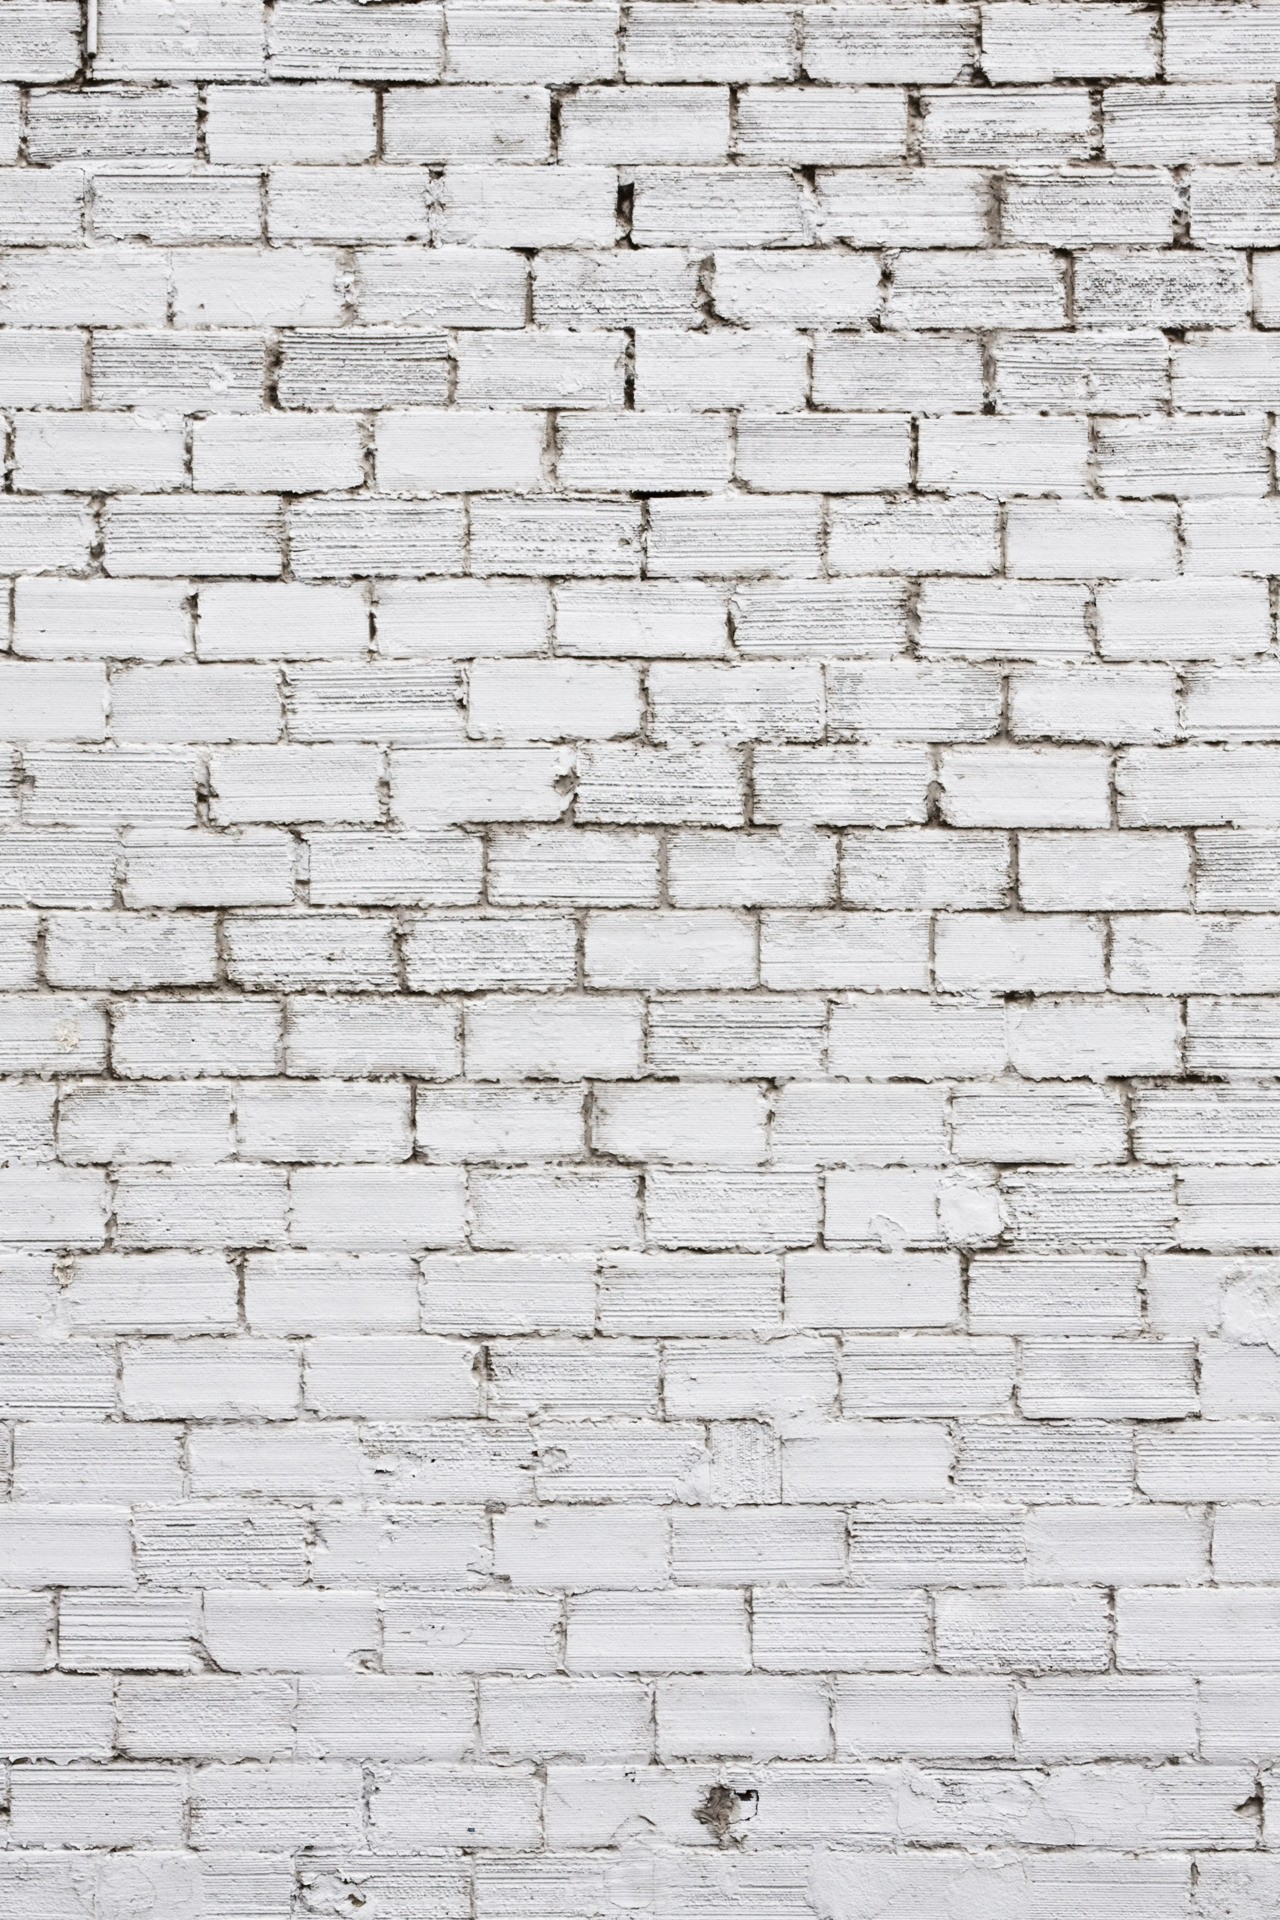 White Brick wallpaper ·① Download free awesome High ...